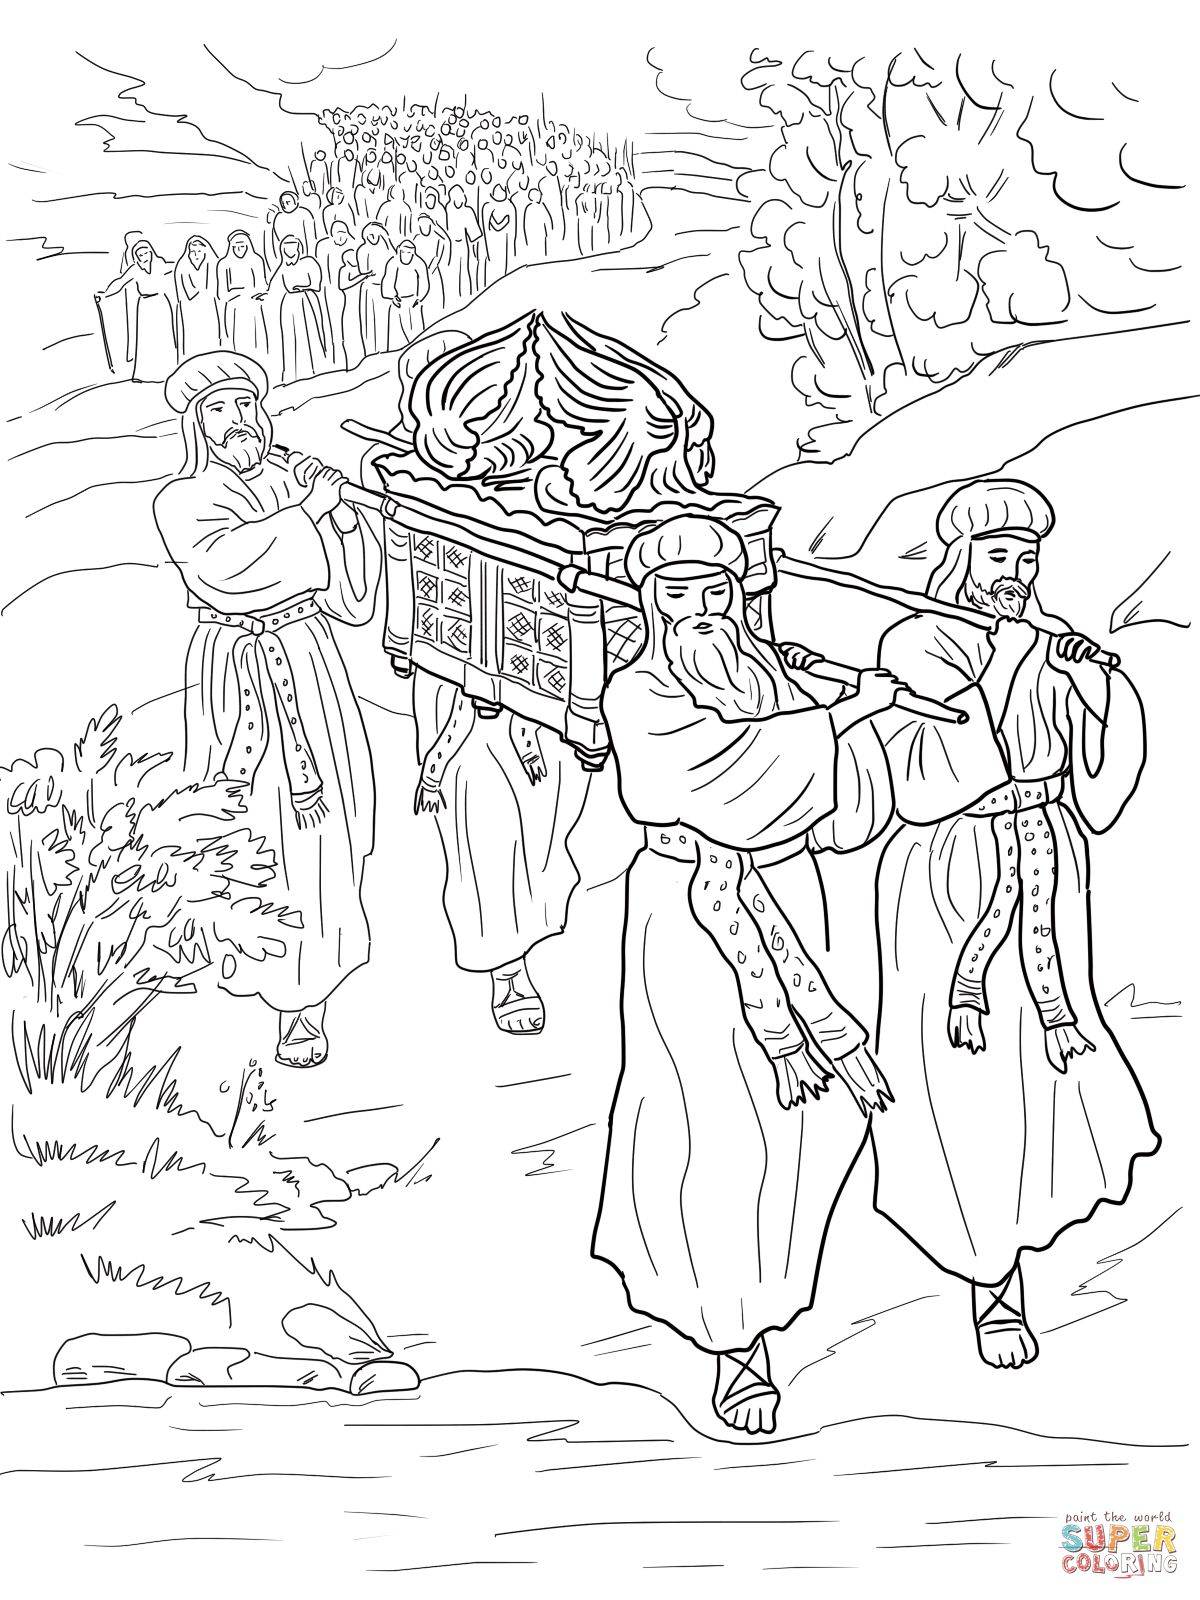 Adult Beauty Rahab Coloring Page Gallery Images best coloring page for rahab az pages hides the spies free printable images